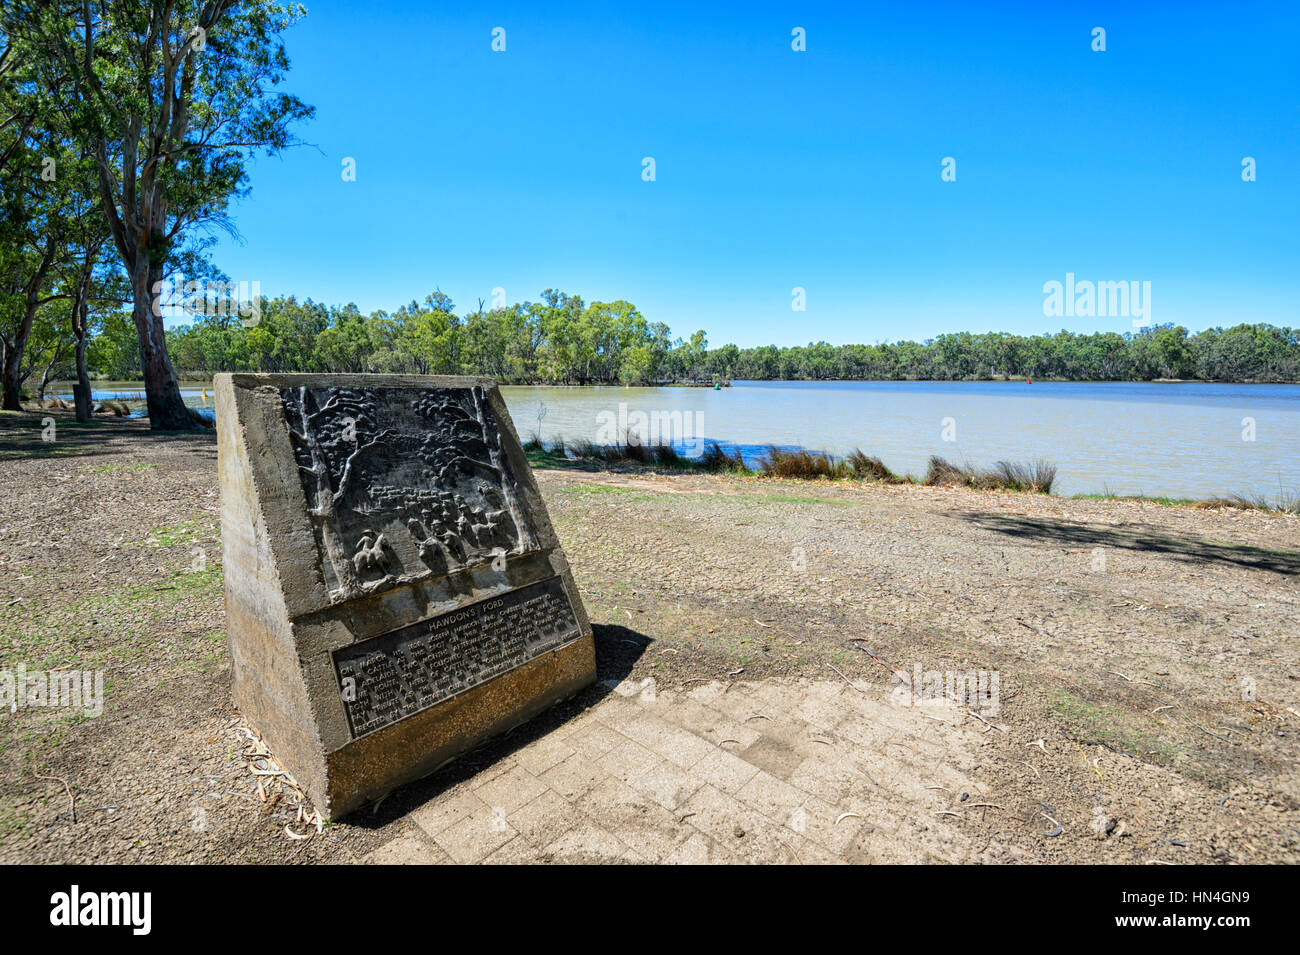 Hawdon's Ford Memorial for the 1838 cattle crossing at the junction of the Darling and Murray rivers, Wentworth, - Stock Image